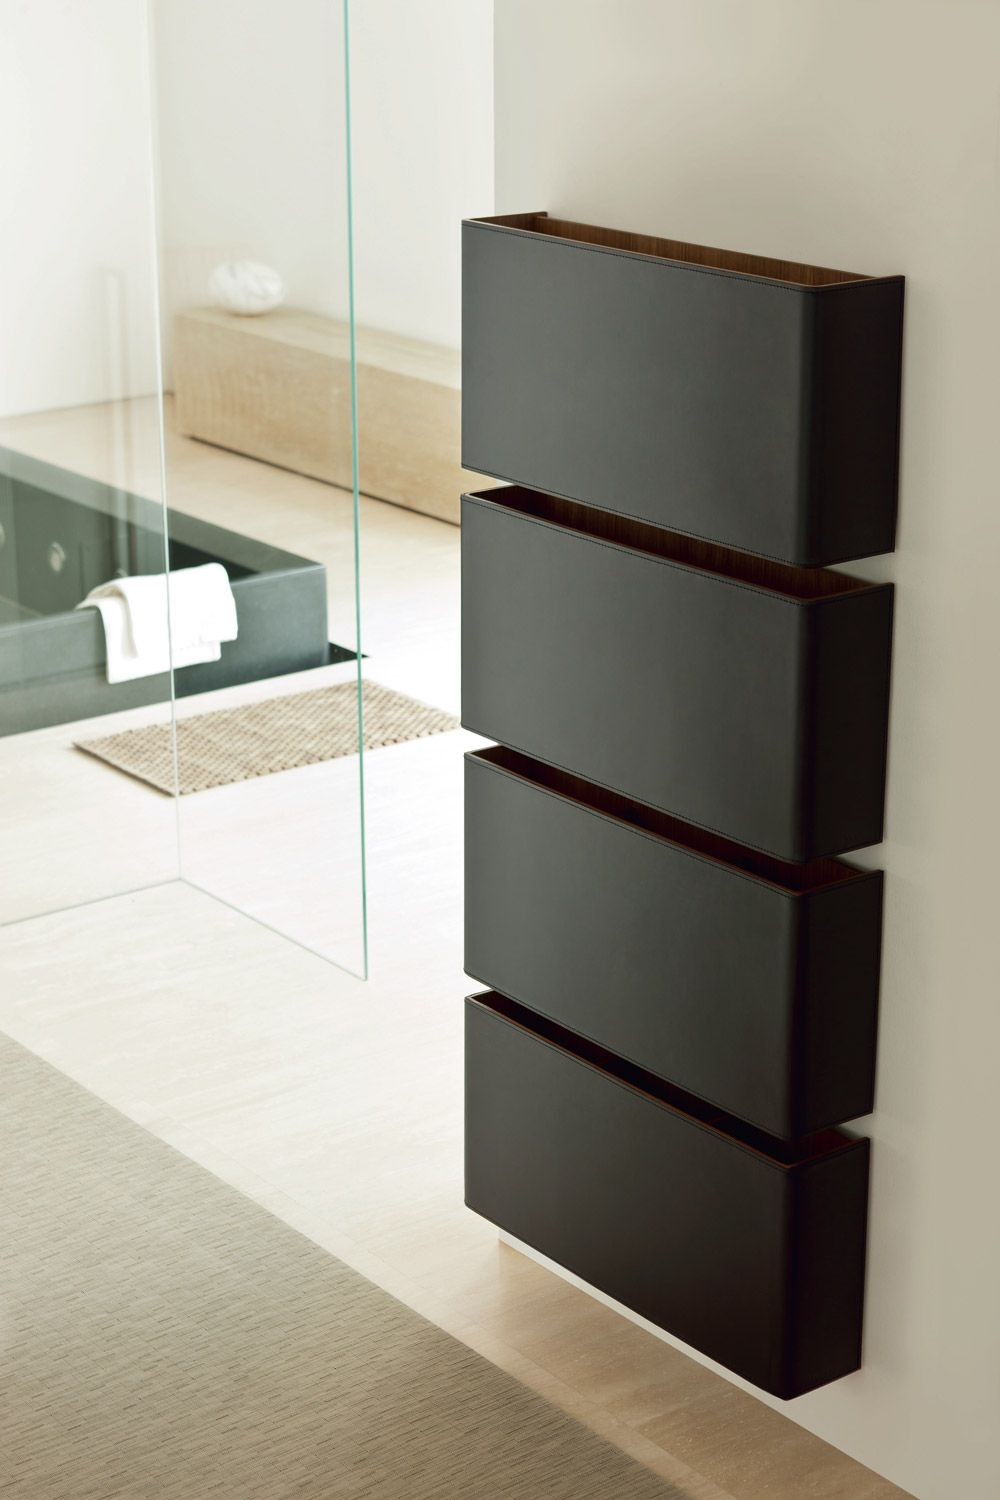 Shoe Organizer On Wall Pit Stop Wall Mounted Pull Down Racks Perfect Shoe Racks